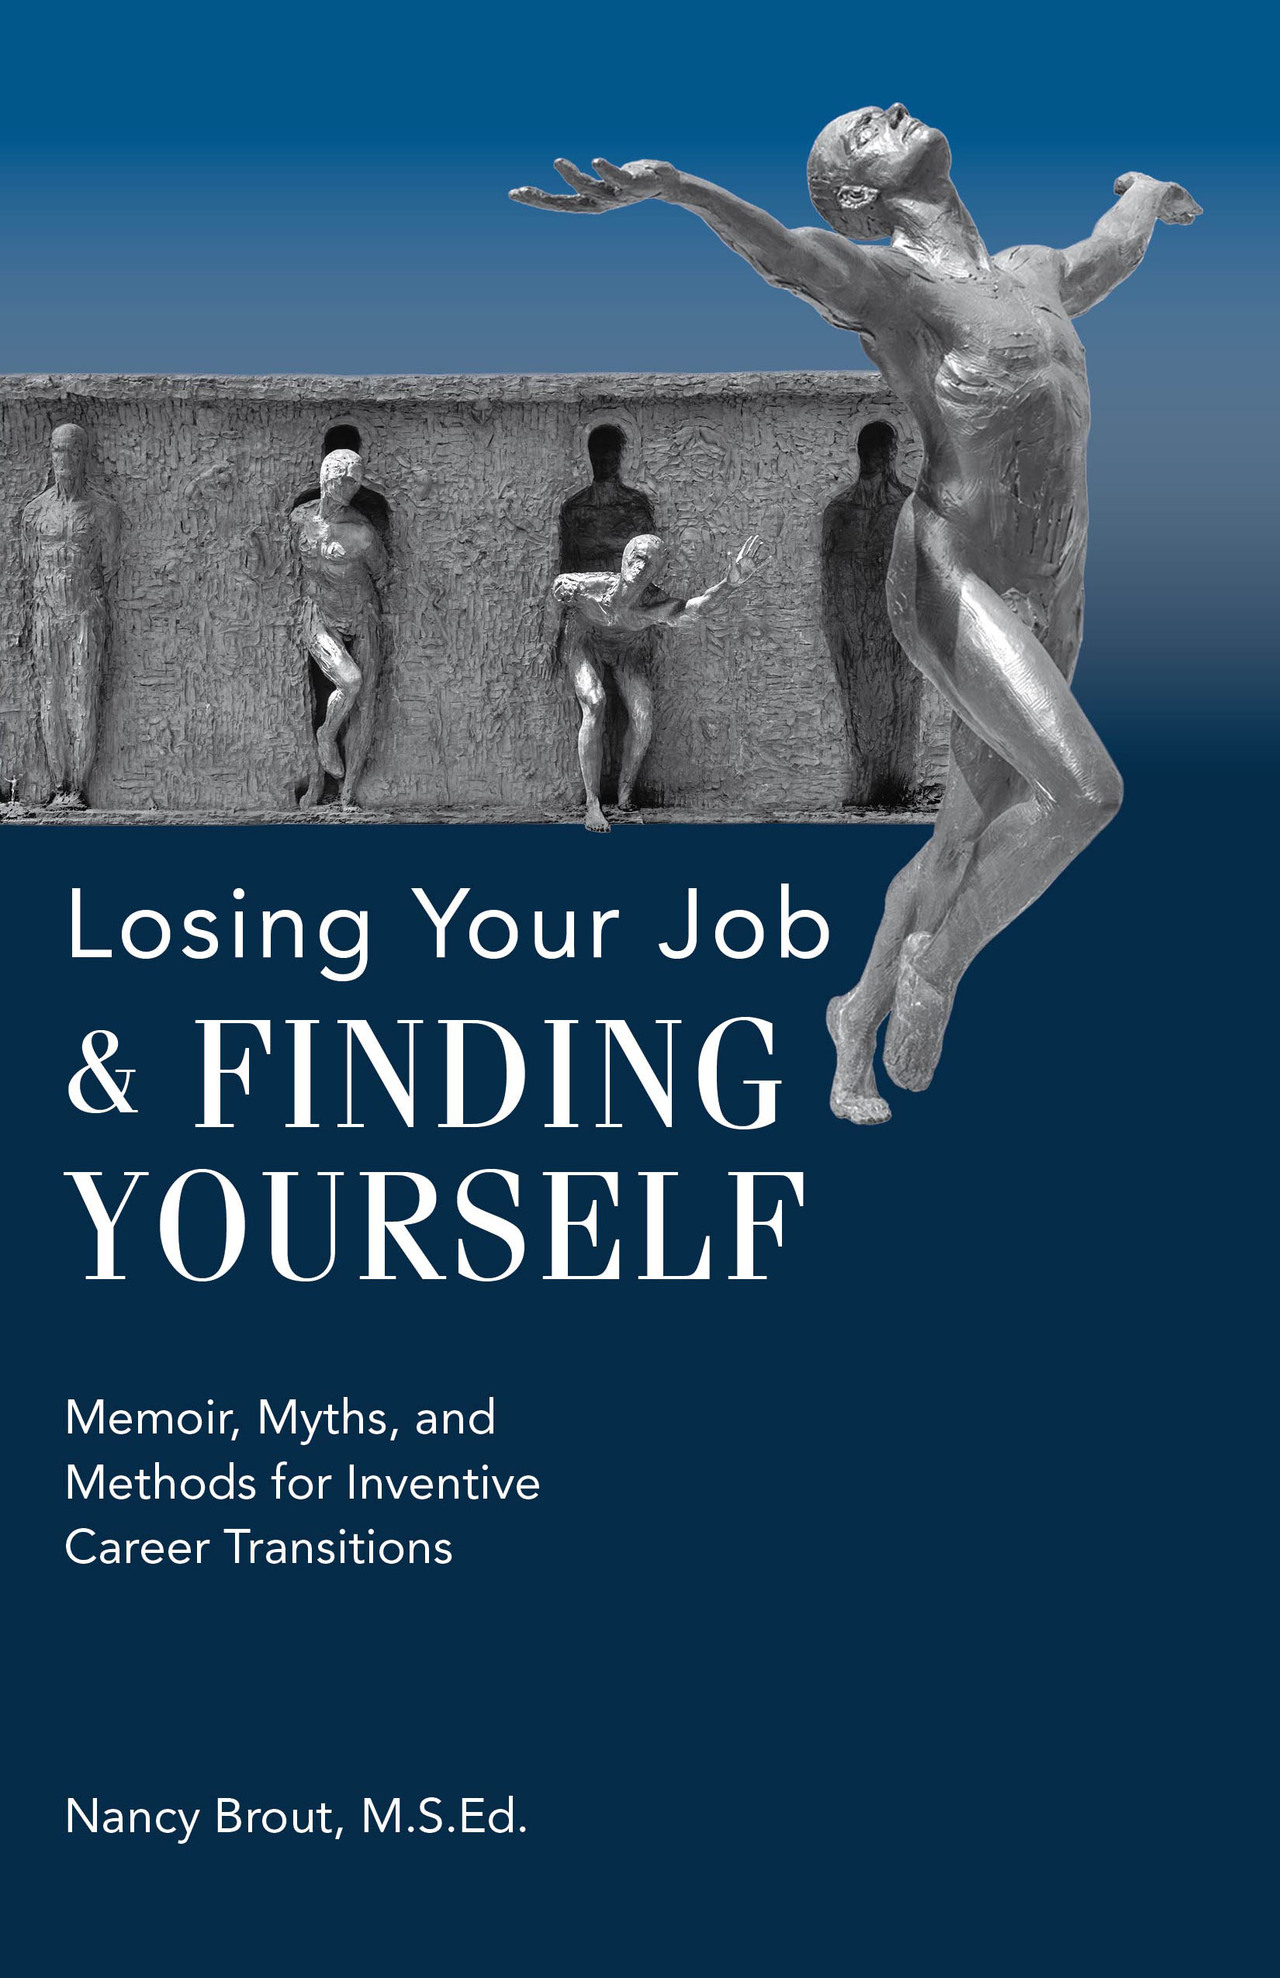 08 losing your job finding yourself cover image final